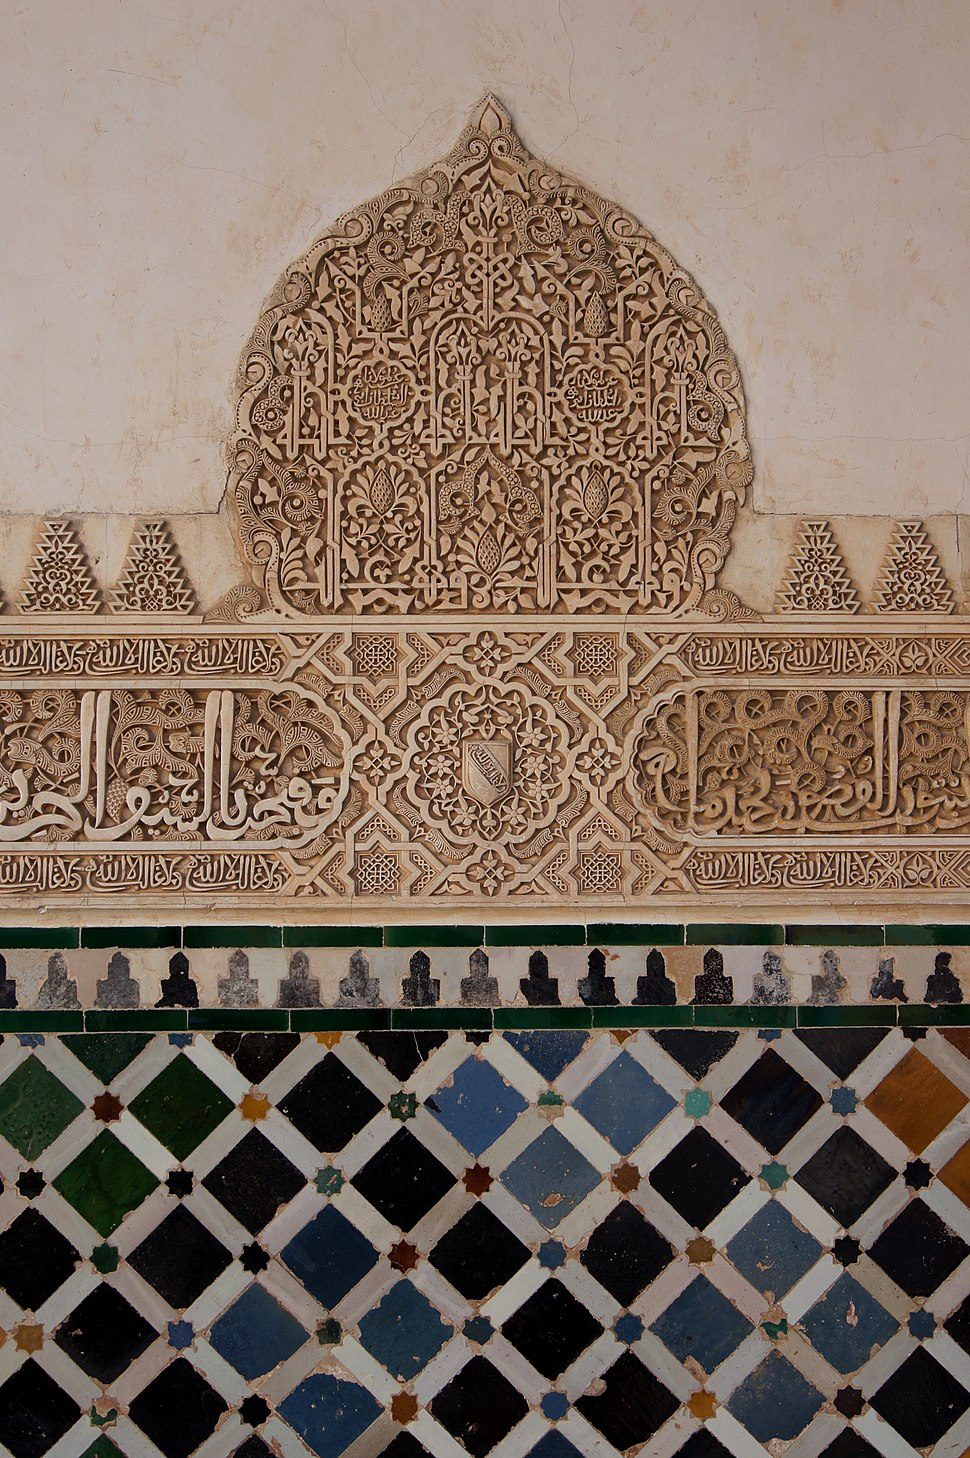 Arabesques alhambra